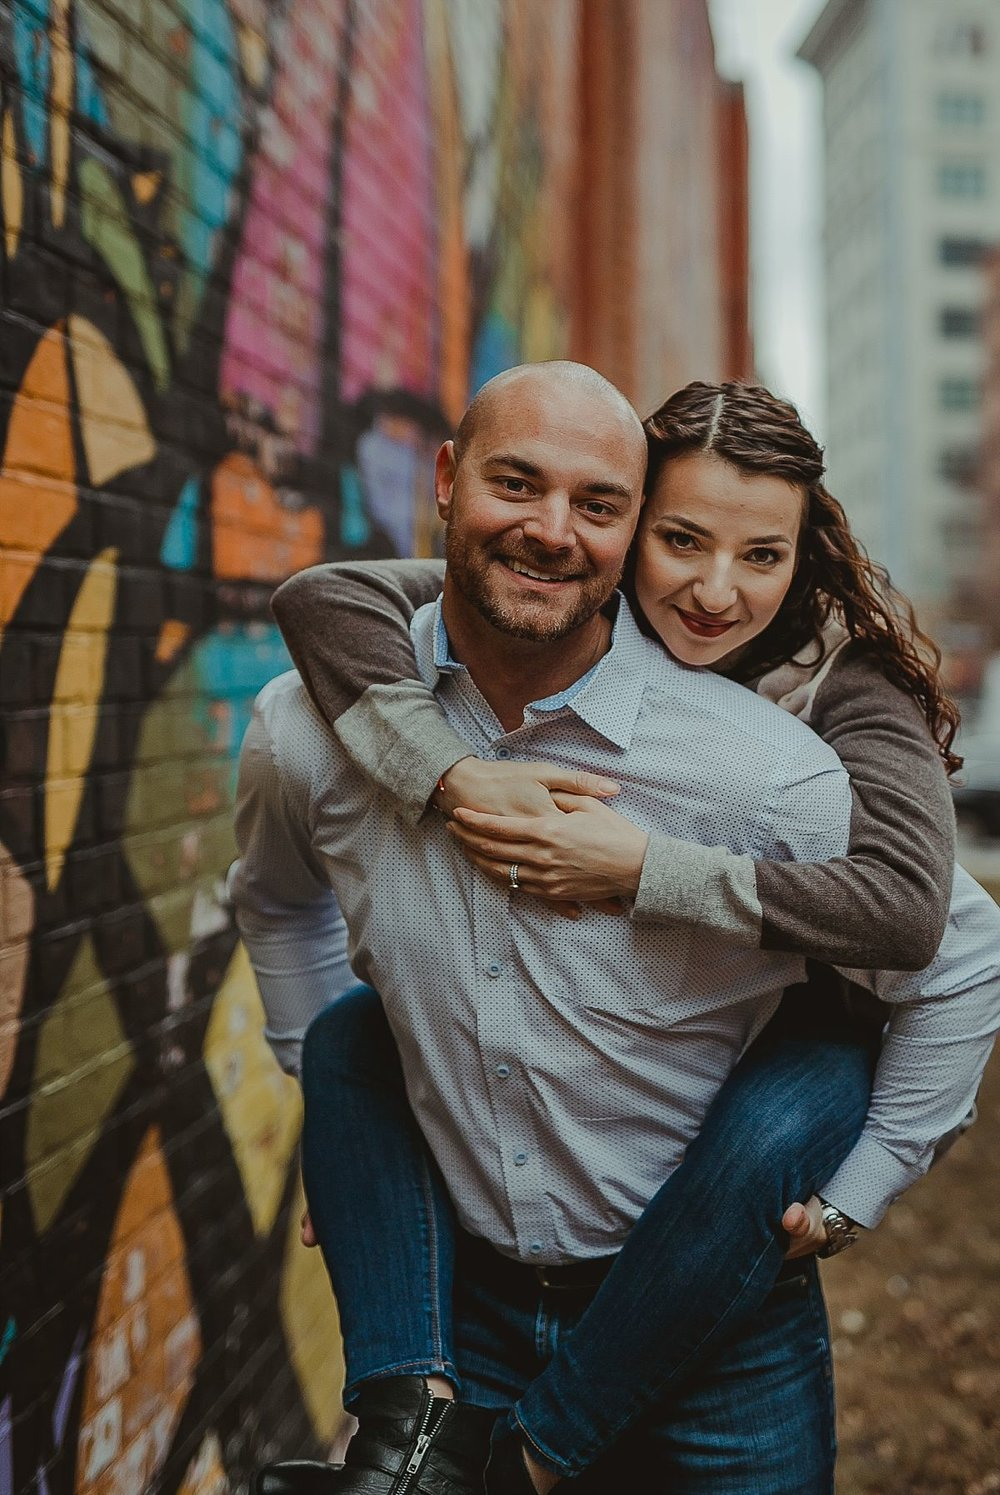 photo of husband giving wife a piggy back in front of colorful graffiti mural in dumbo brooklyn. photo by nyc family photographer krystil mcdowall